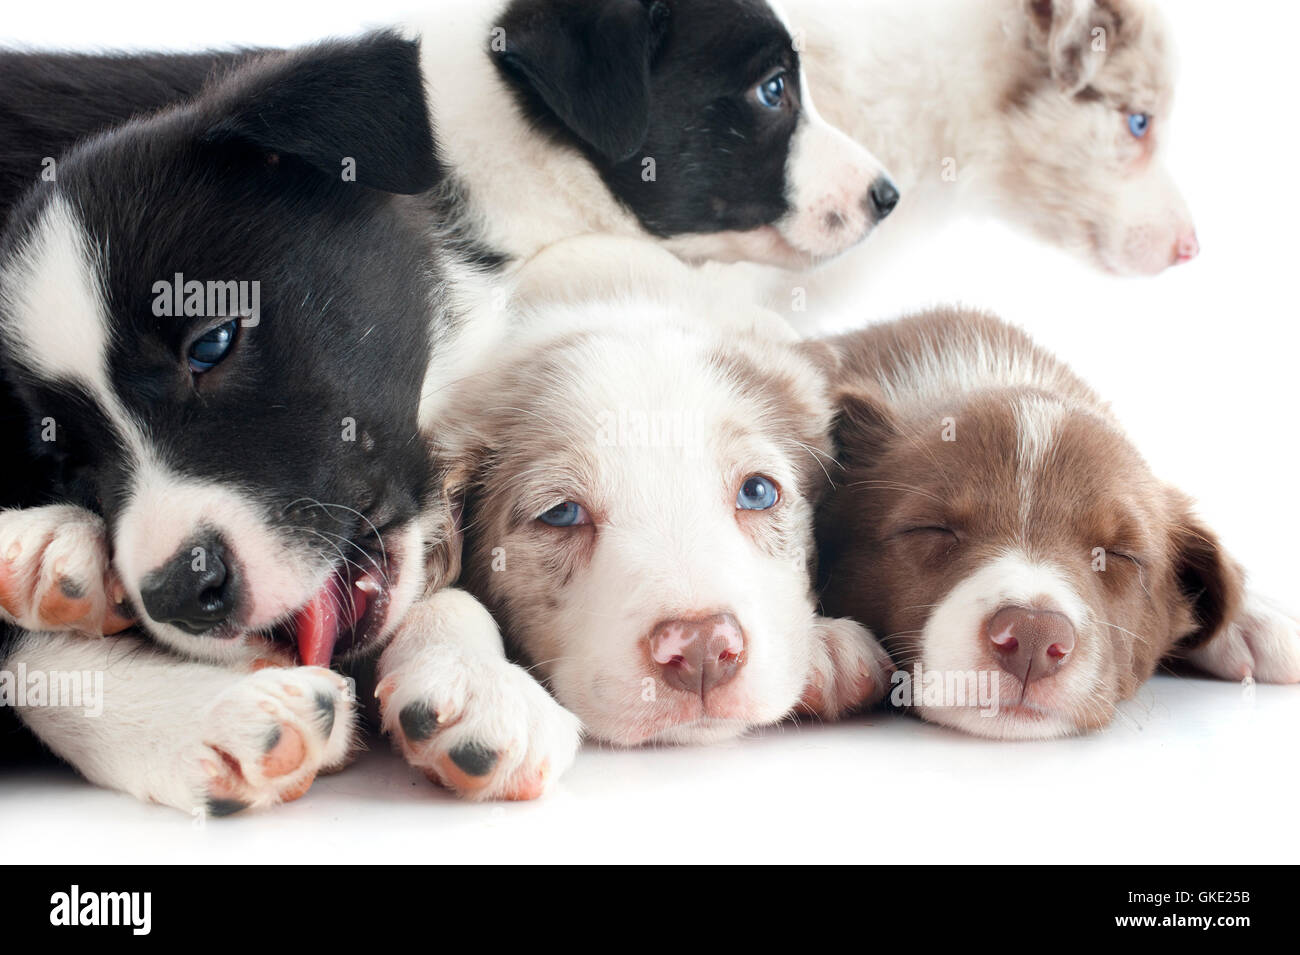 dog dogs puppy - Stock Image